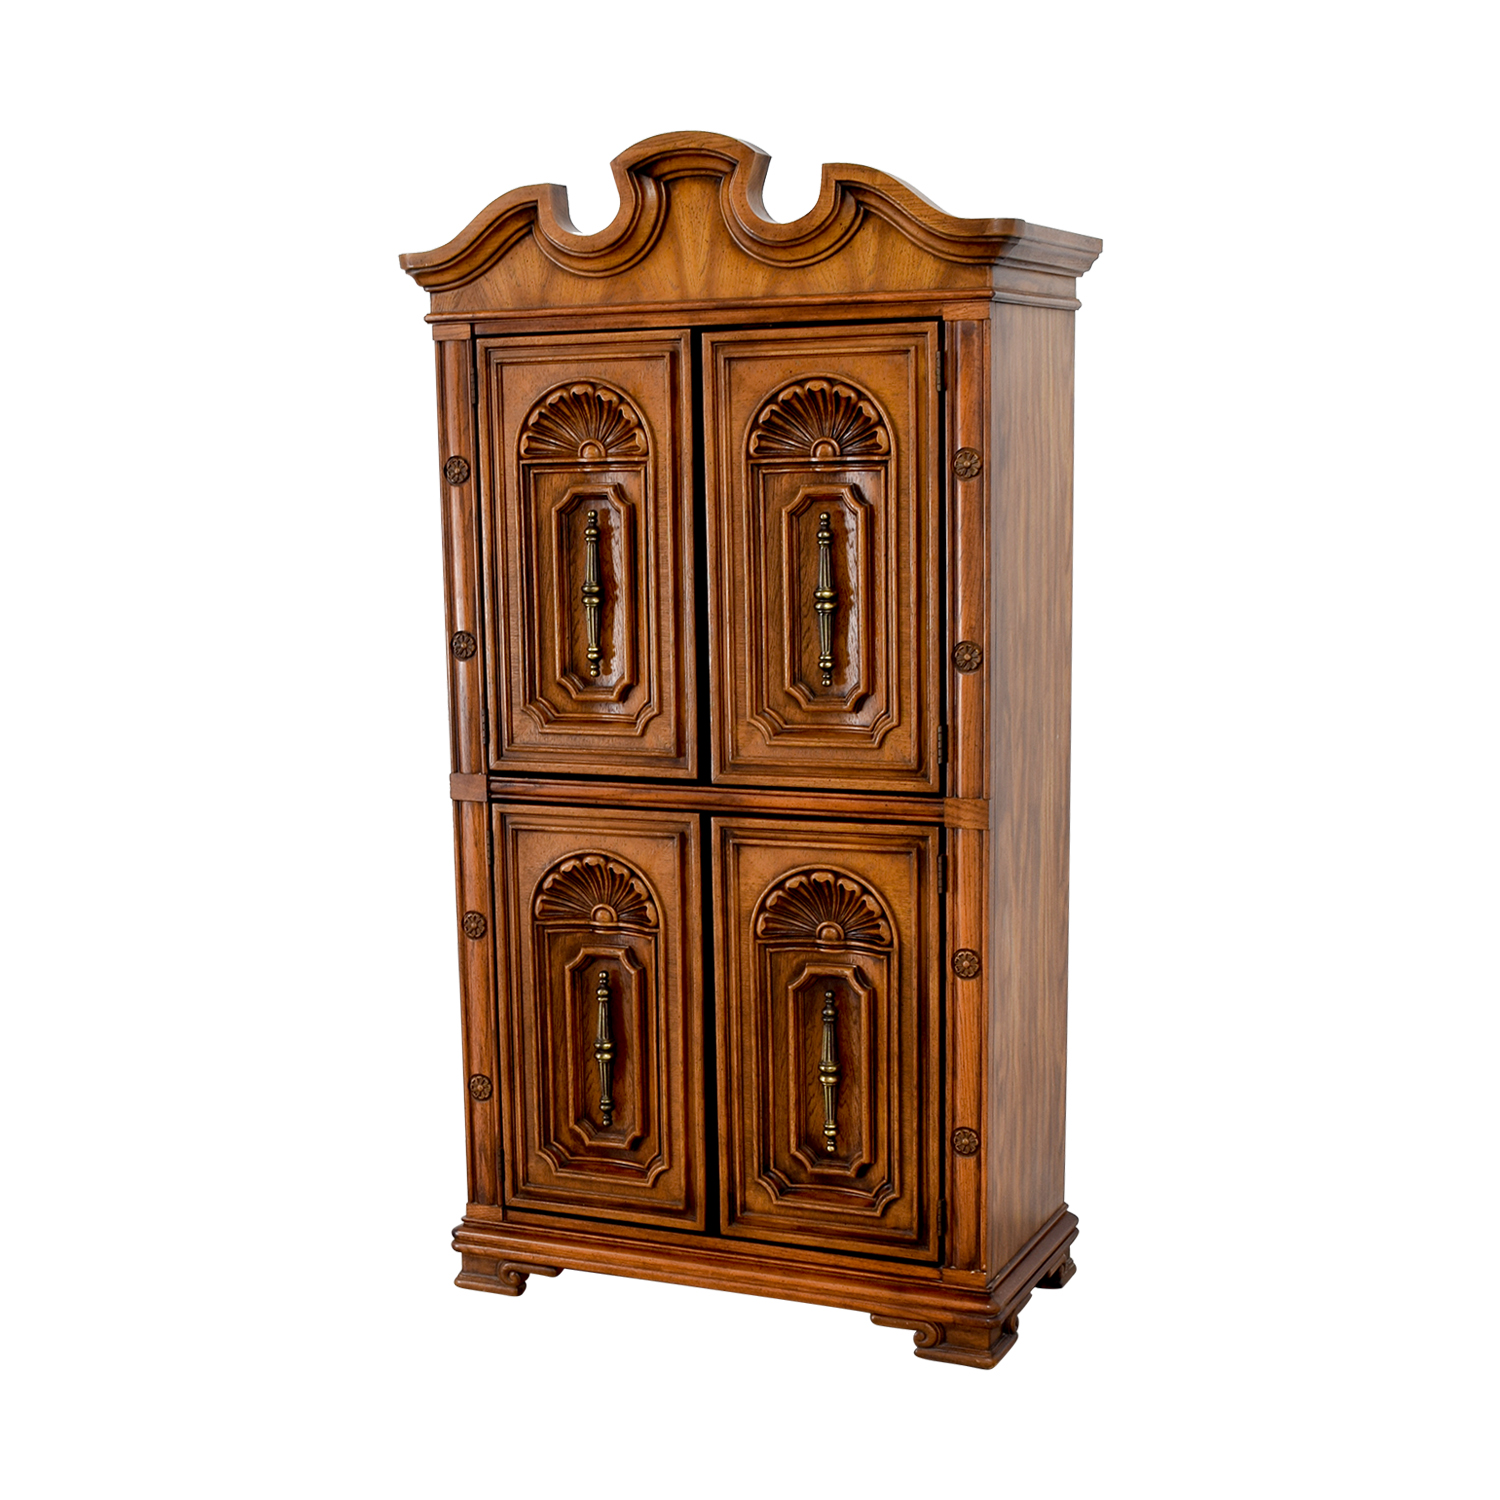 90% OFF - Seaman's Seaman's Carved Wood Armoire / Storage